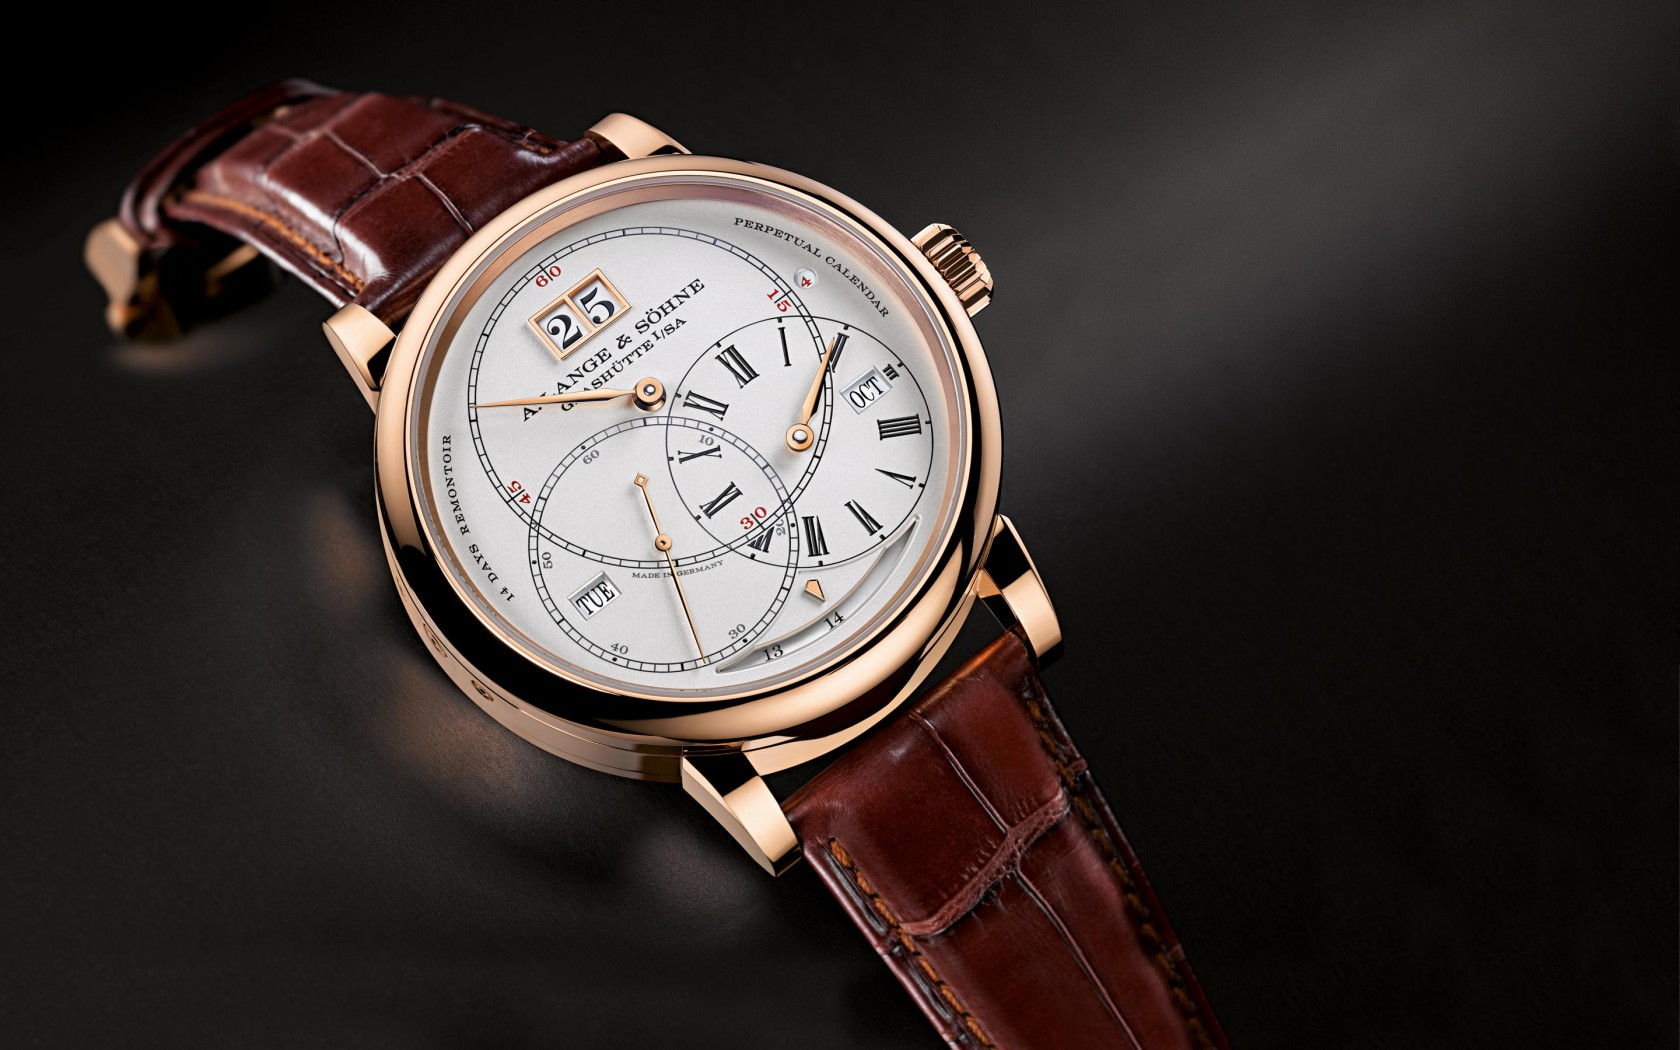 Top 10 perpetual calendar watches 2014 - Time Transformed